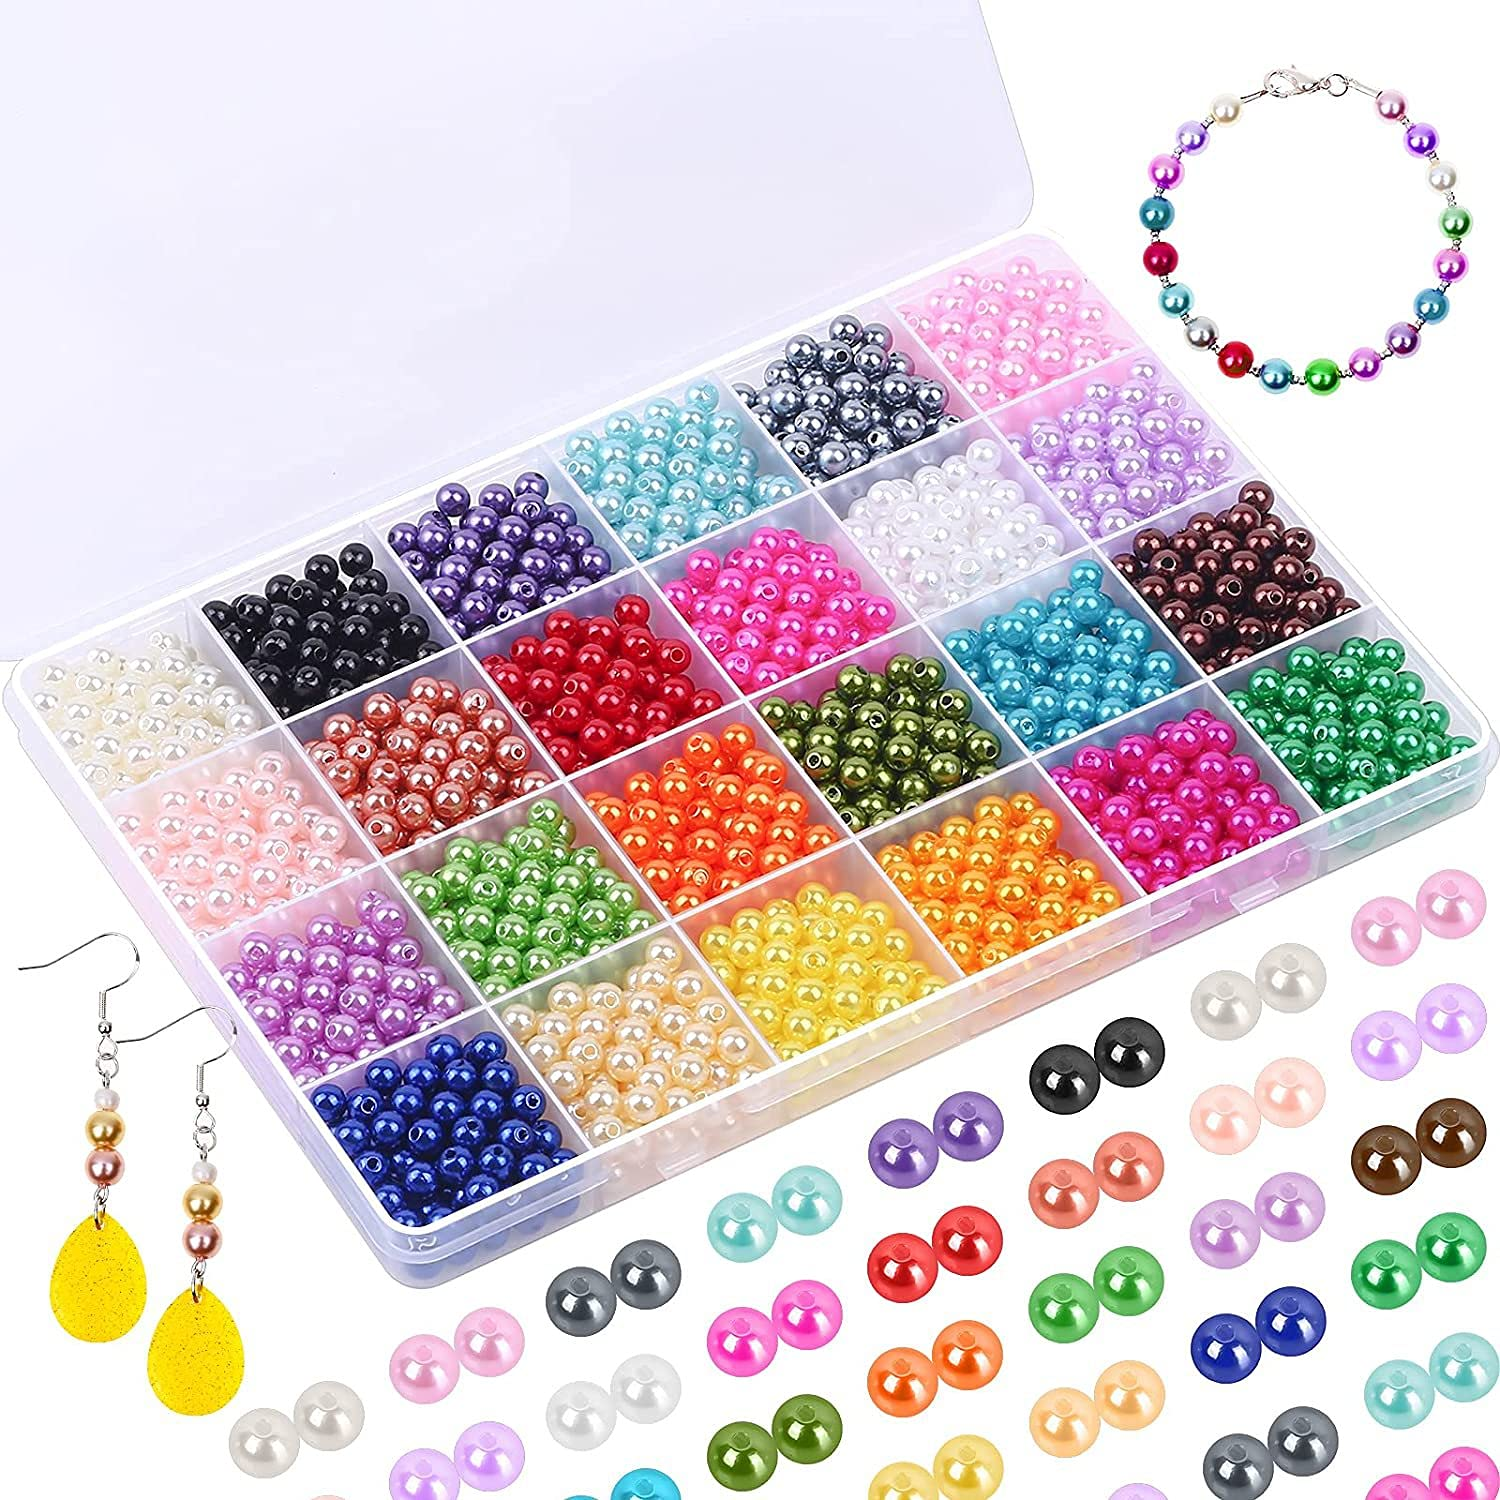 1680 Product pcs Colorful Colors ABS Imitation Round Pearls Beads Portland Mall Be Box